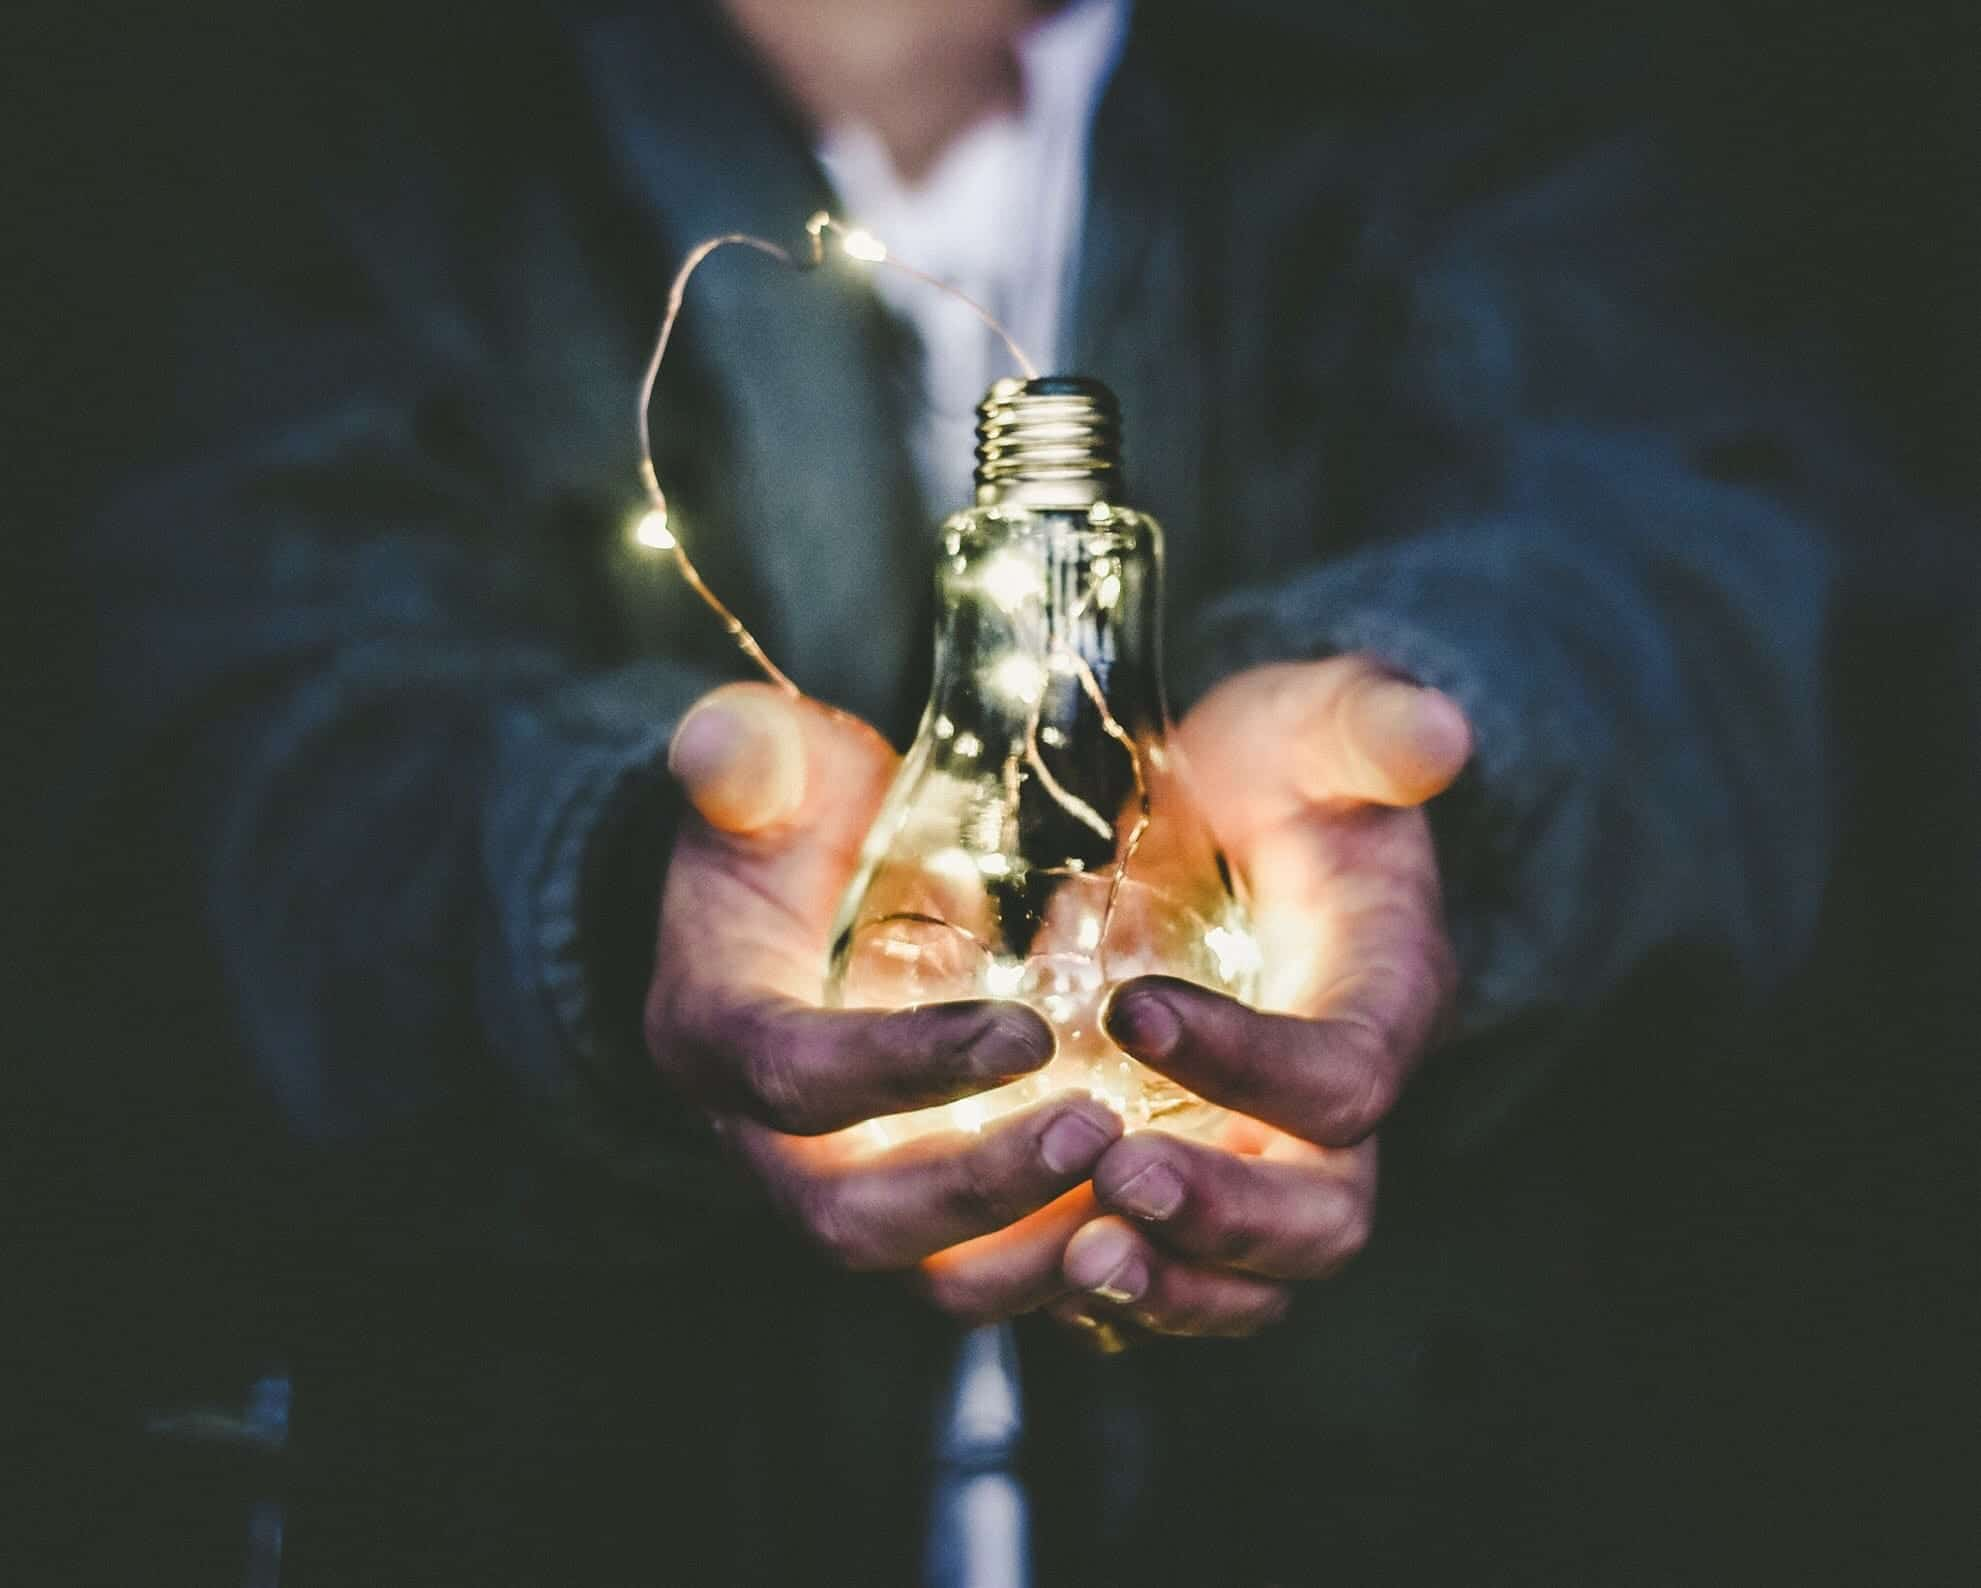 Man holding incandescent light bulb; image by Riccardo Annandale, via Unsplash.com.